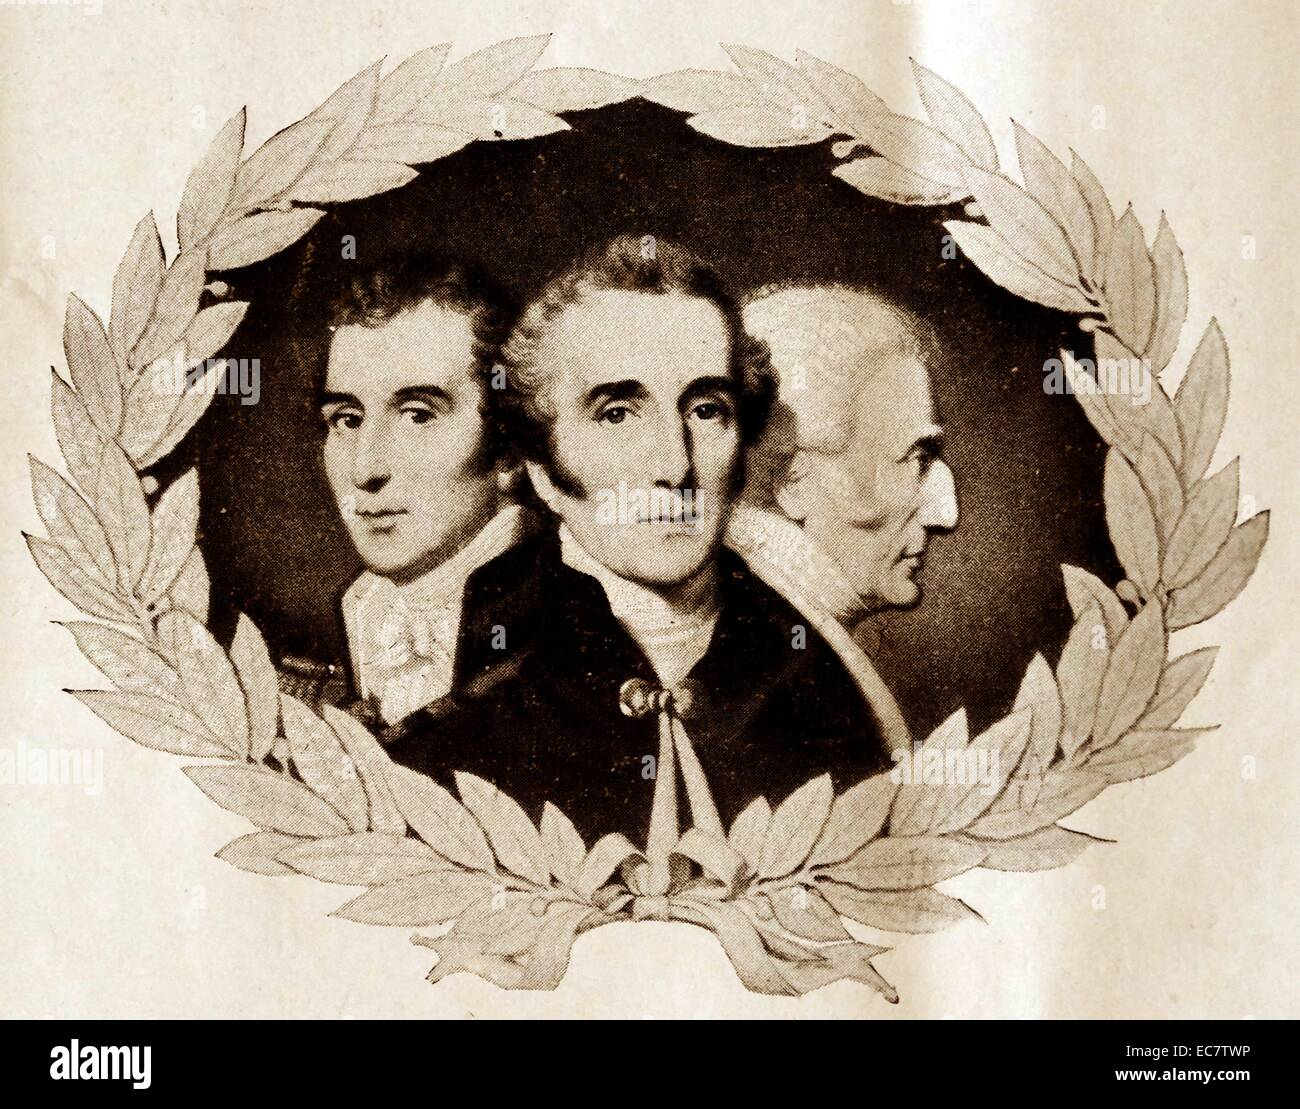 portrait of the duke of wellington. - Stock Image